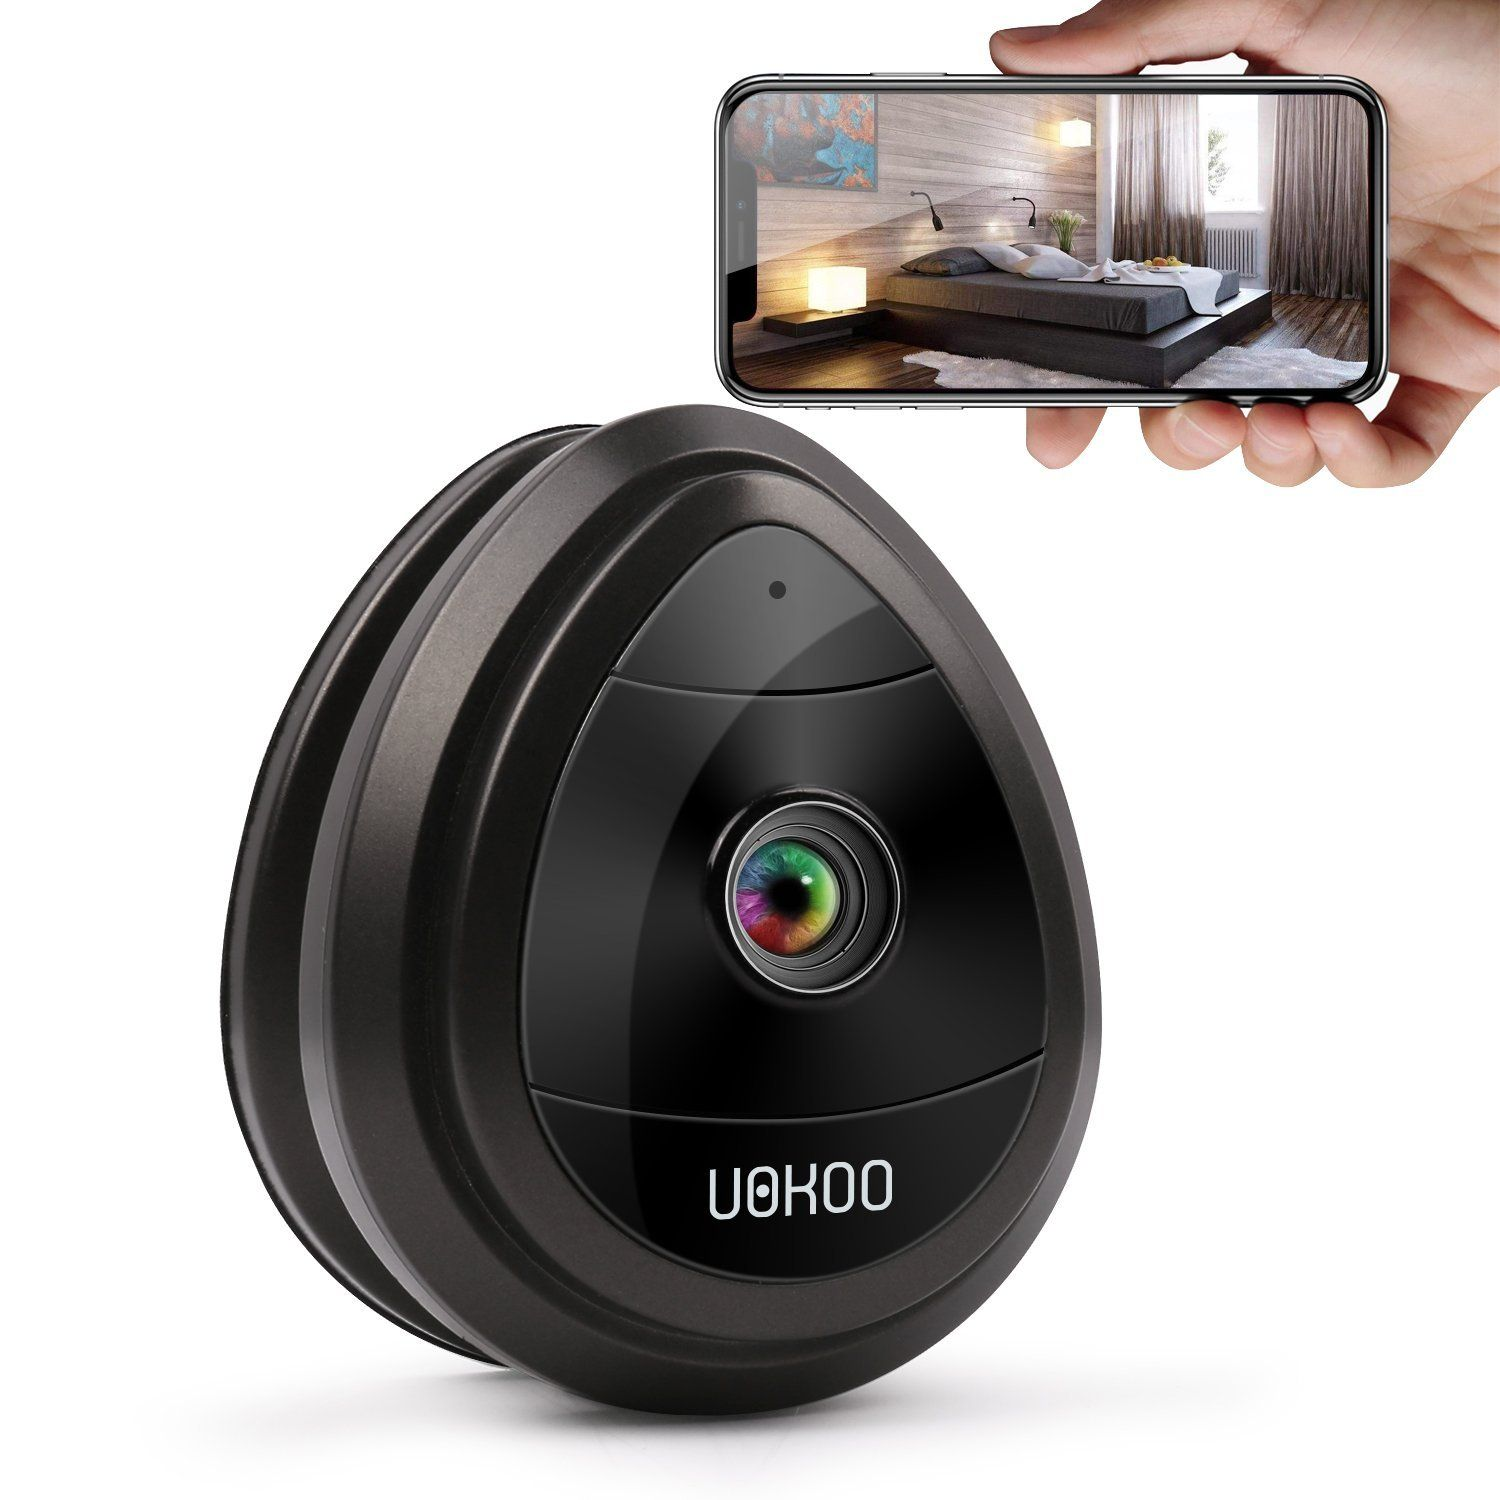 Best Ip Security Cameras 2019 Wireless IP Home Surveillance Security Camera System with Motion